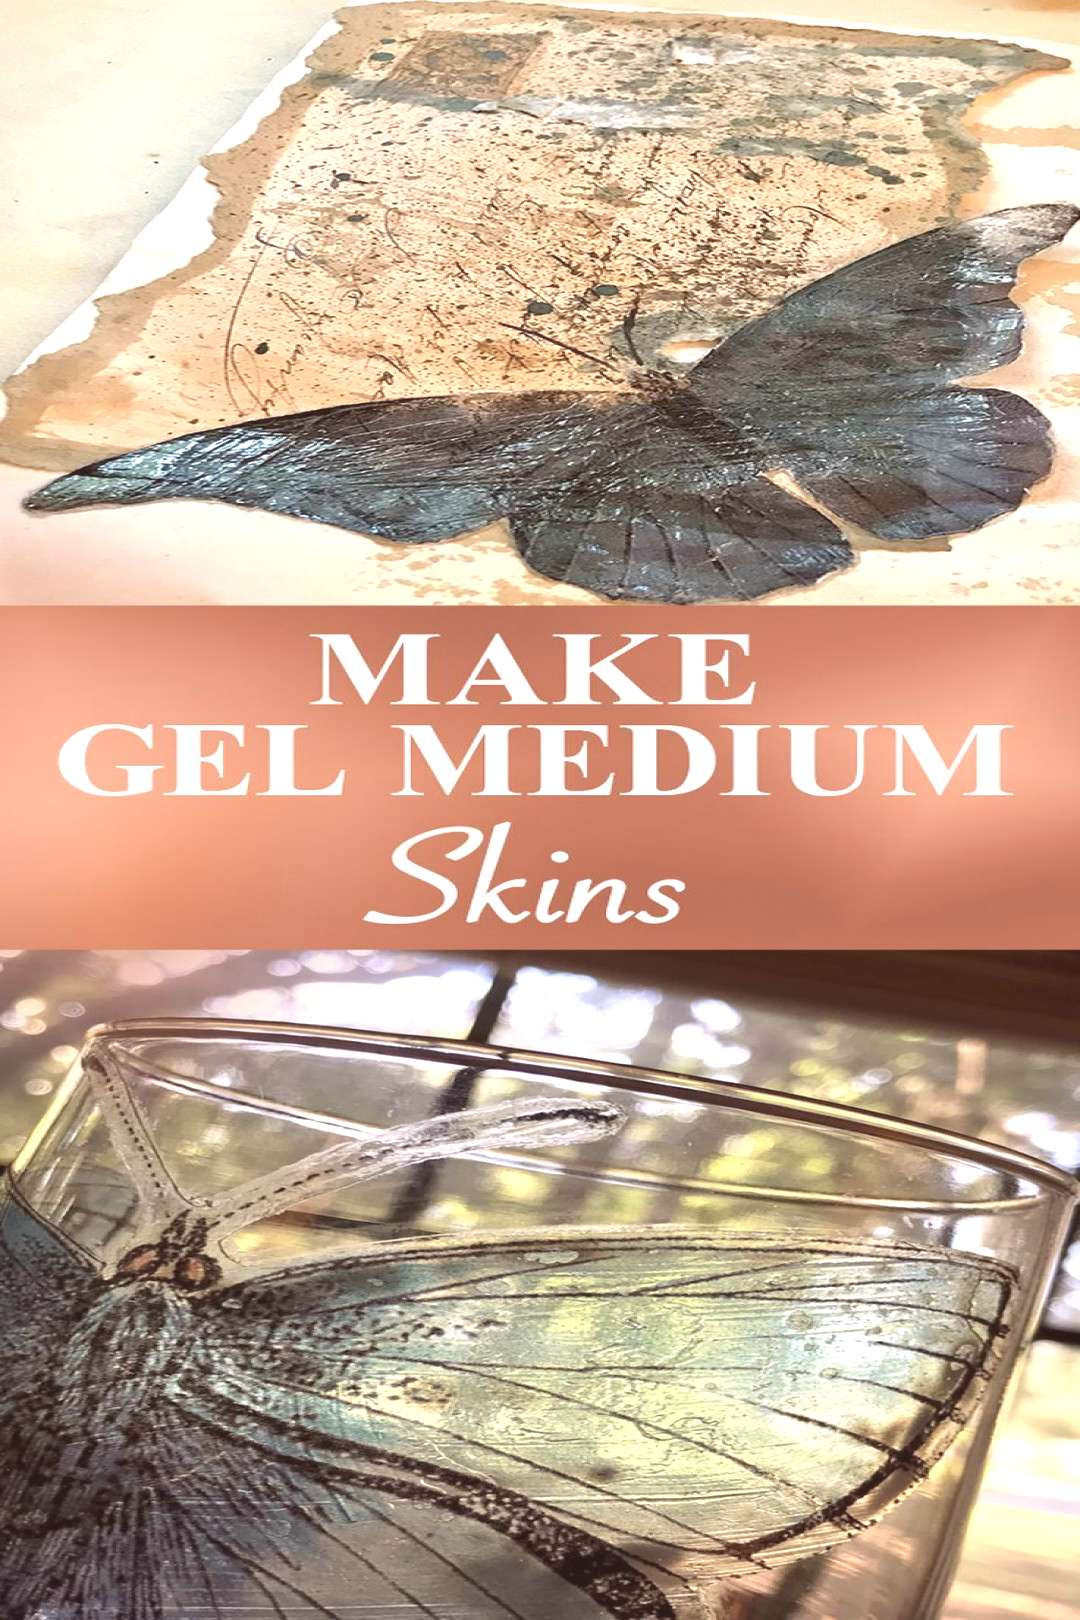 Learn a Quick & Easy Mixed Media Technique - Make Gel Medium Skins to add to junk journal pages, mi